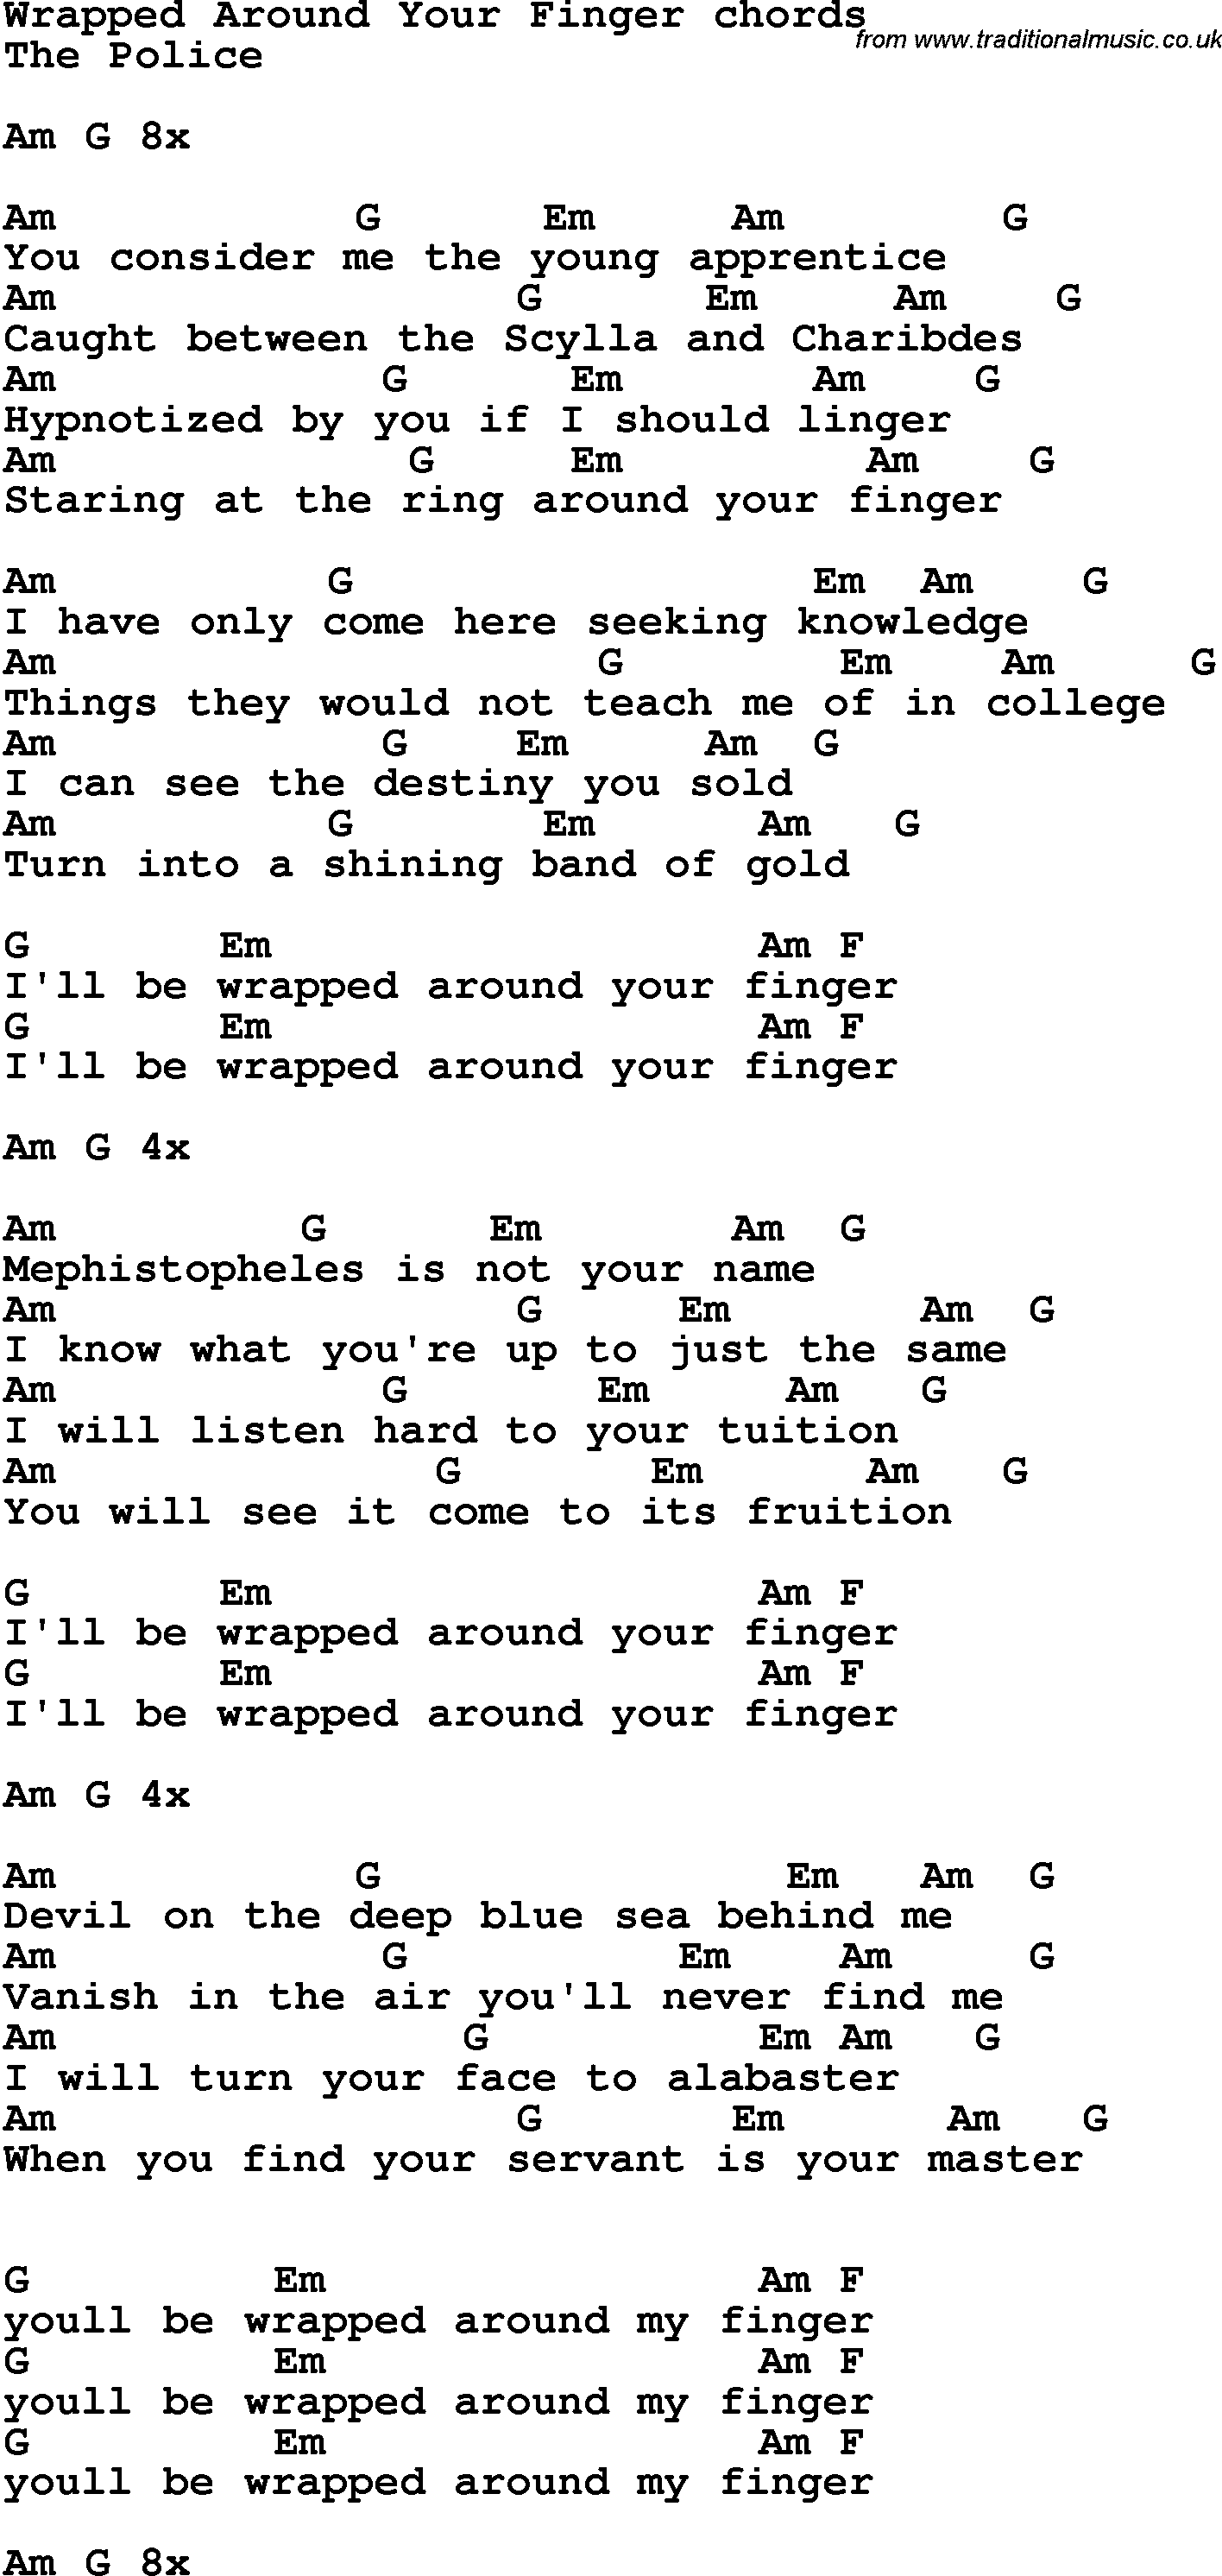 Song lyrics with guitar chords for Wrapped Around Your Finger